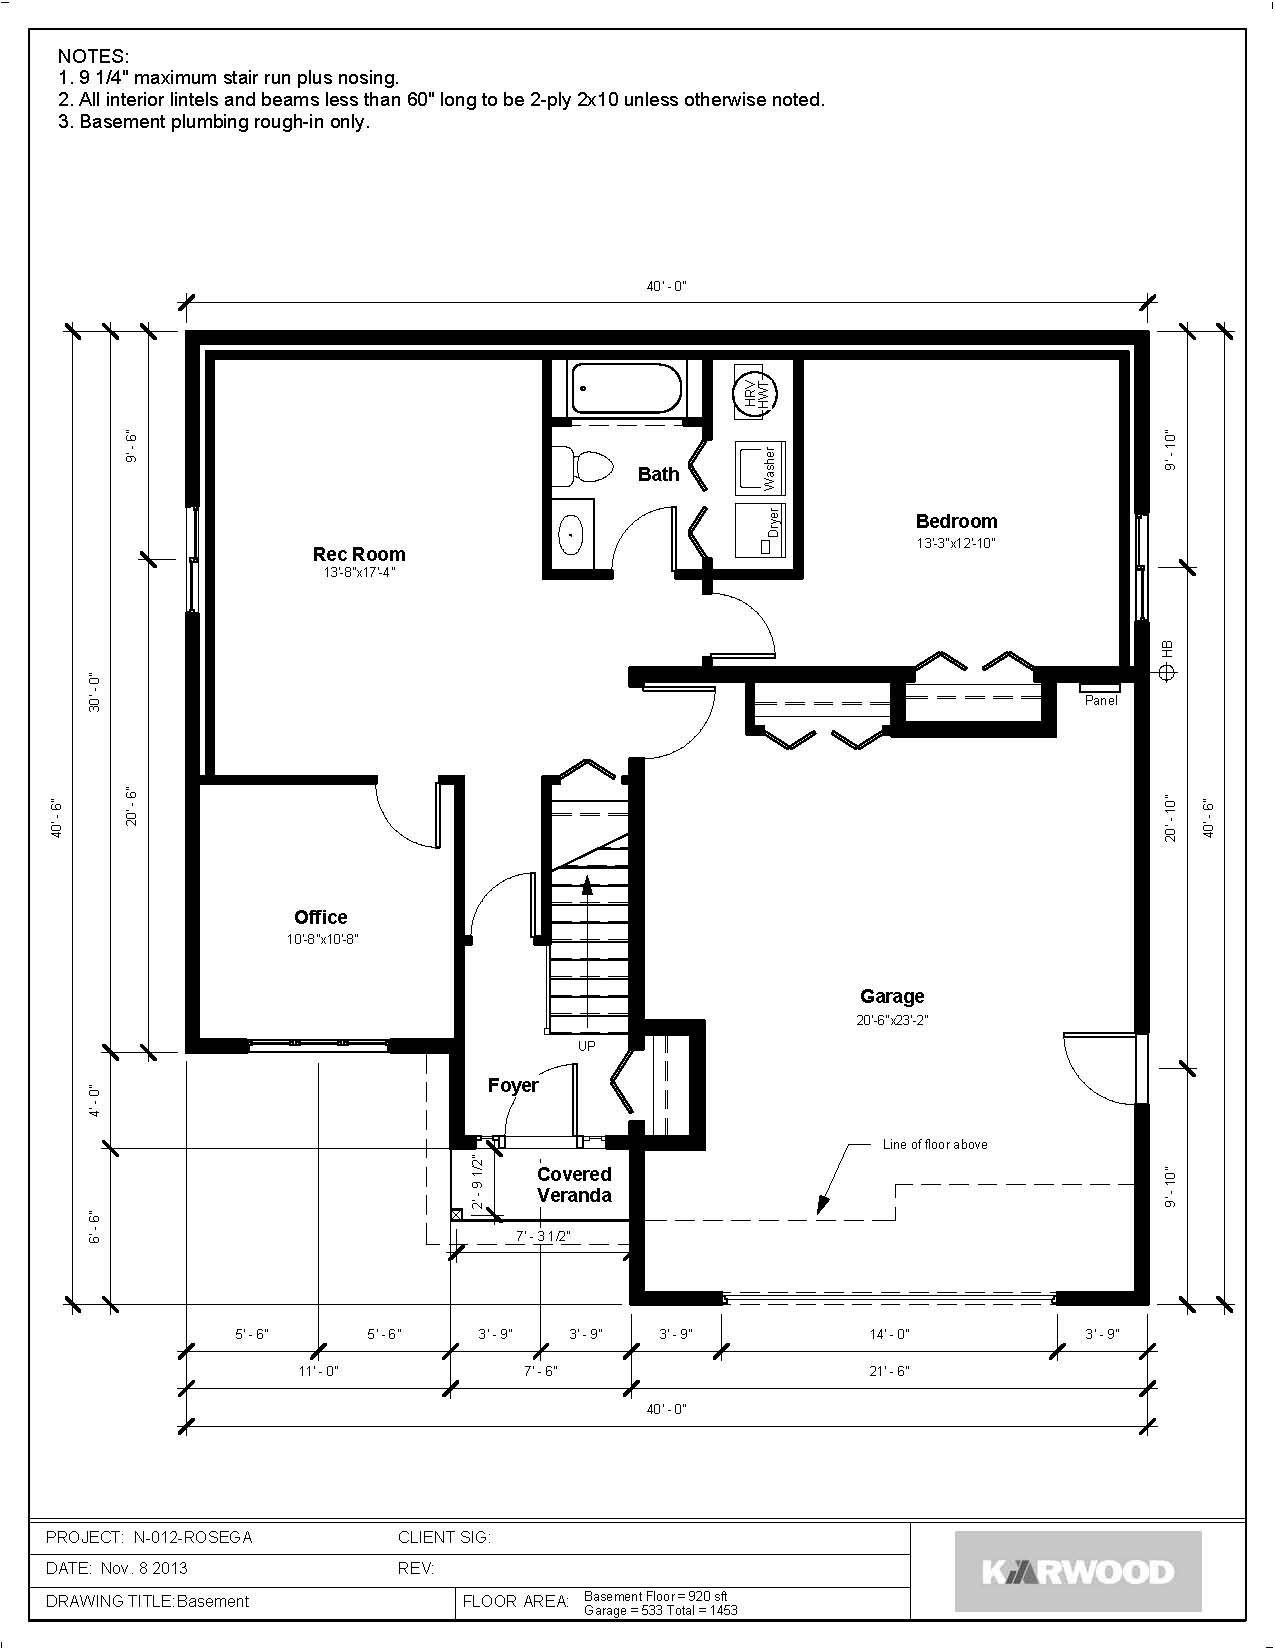 Pages from N-012-ROSEGA (web plans).jpg